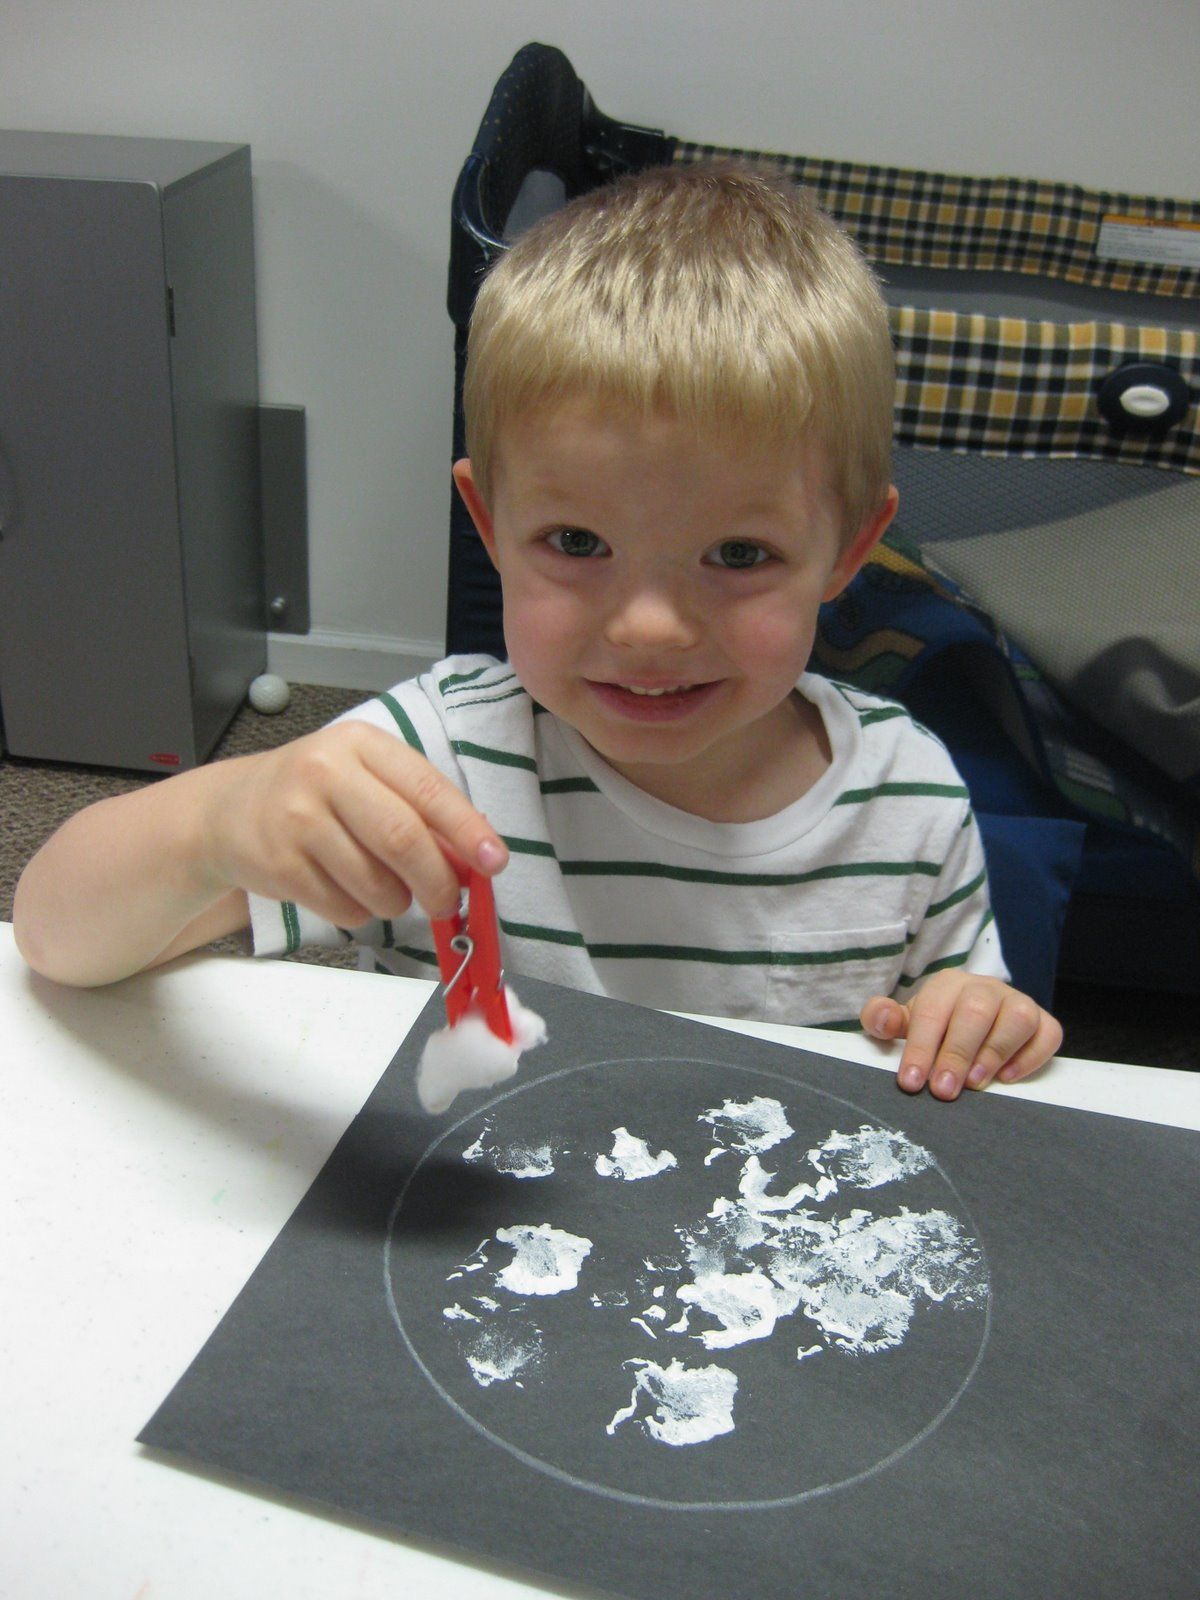 Moon Painting With A White Crayon Trace Cereal Bowl On